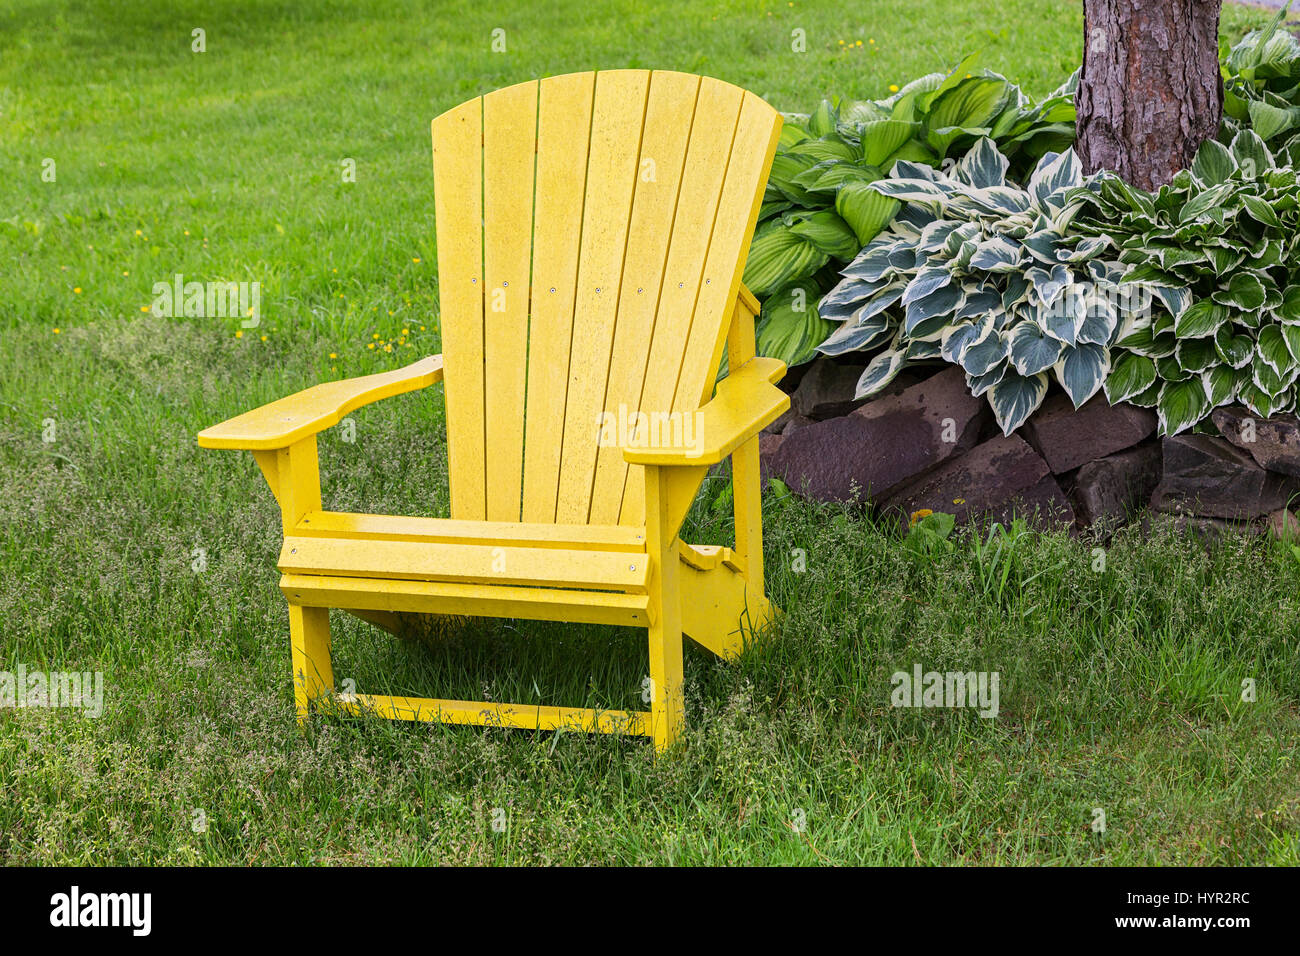 Outdoor Furniture Ringwood Wooden Chair In Park Stock Photos Wooden Chair In Park Stock